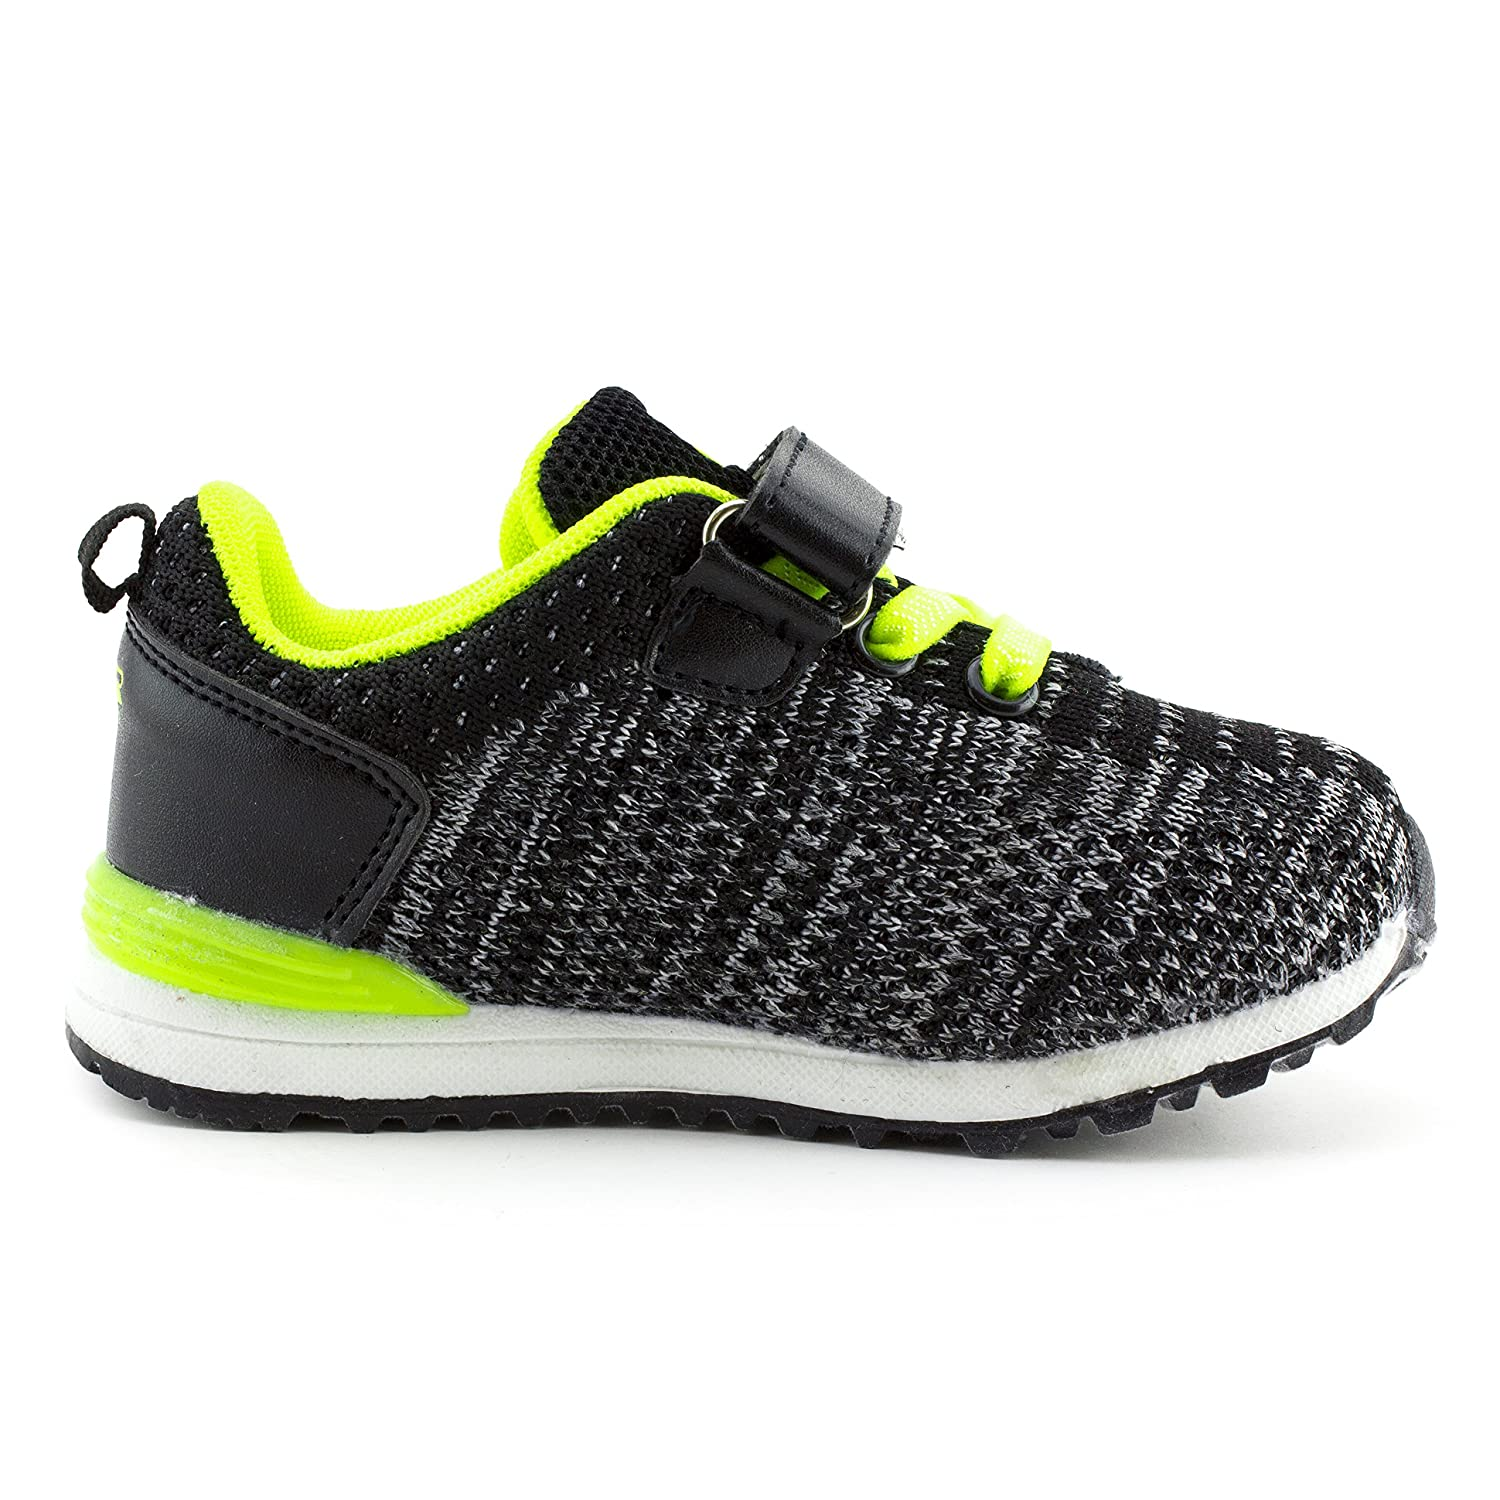 Air Balance Unisex Solid Color Hook and Loop Adjustable Closure Running Walking Shoes Toddler